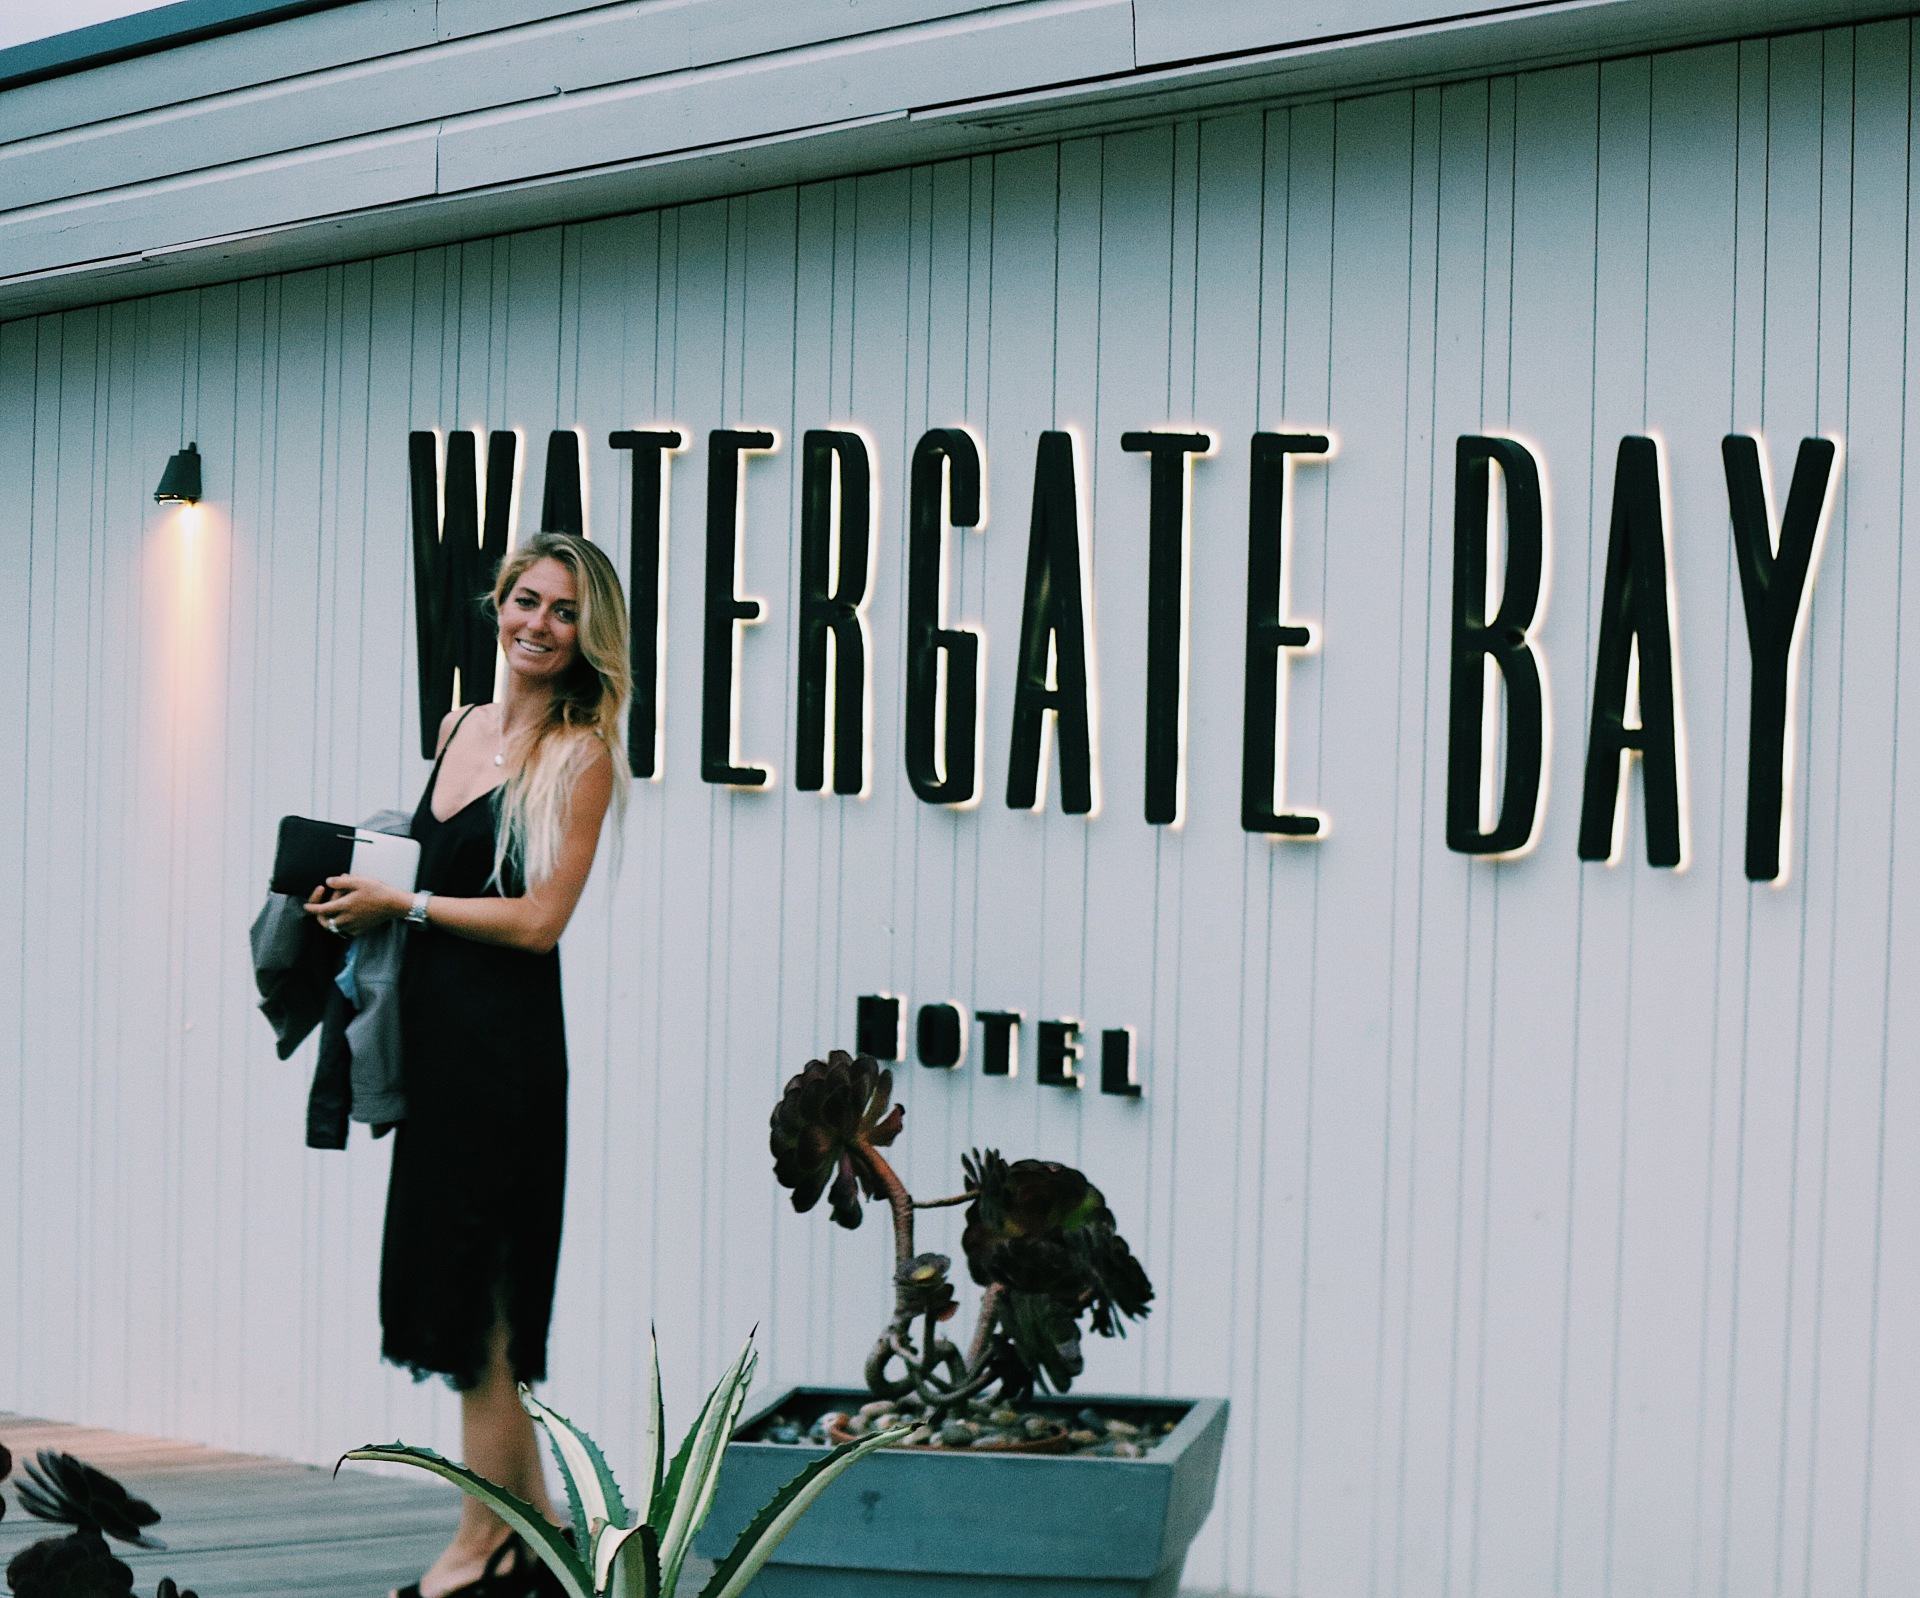 Watergate Bay Hotel Dining Experience